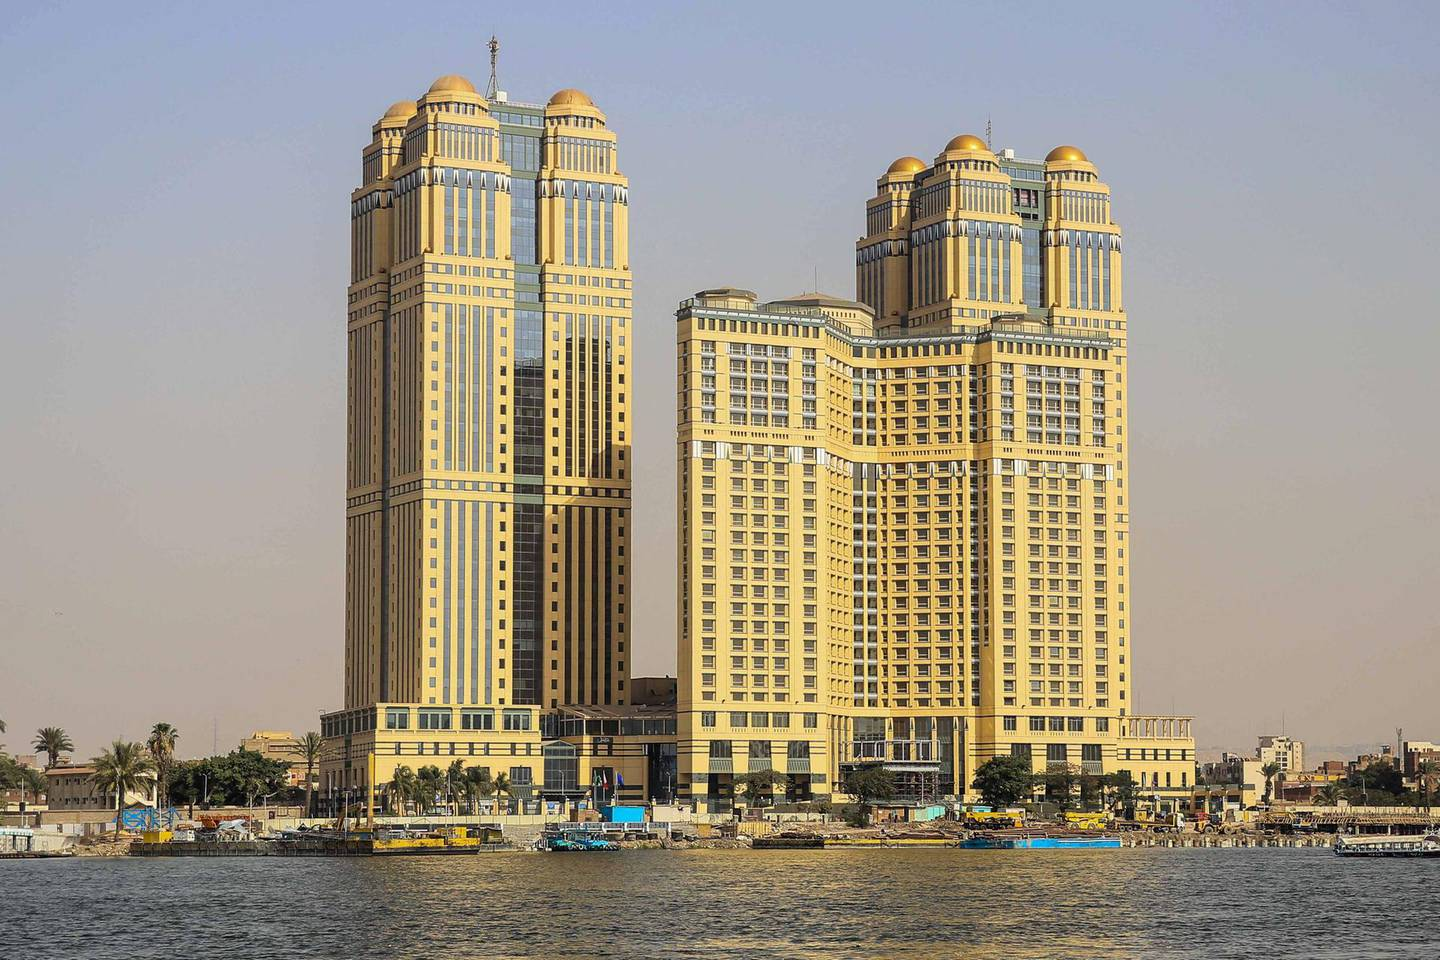 A general view taken on July 30, 2020 shows the five-star Fairmont Nile City hotel, where an alleged sexual assault took place in 2014, in the Egyptian capital Cairo. - A gang rape allegation at a luxury hotel in Egypt stemming from a prominent social media account has triggered a new #MeToo wave in the deeply conservative country. The alleged assault took place at the five-star Fairmont Nile City hotel in Cairo in 2014 where a group of six men drugged and raped a young woman, according to several social media accounts (Photo by Samer ABDALLAH / AFP)